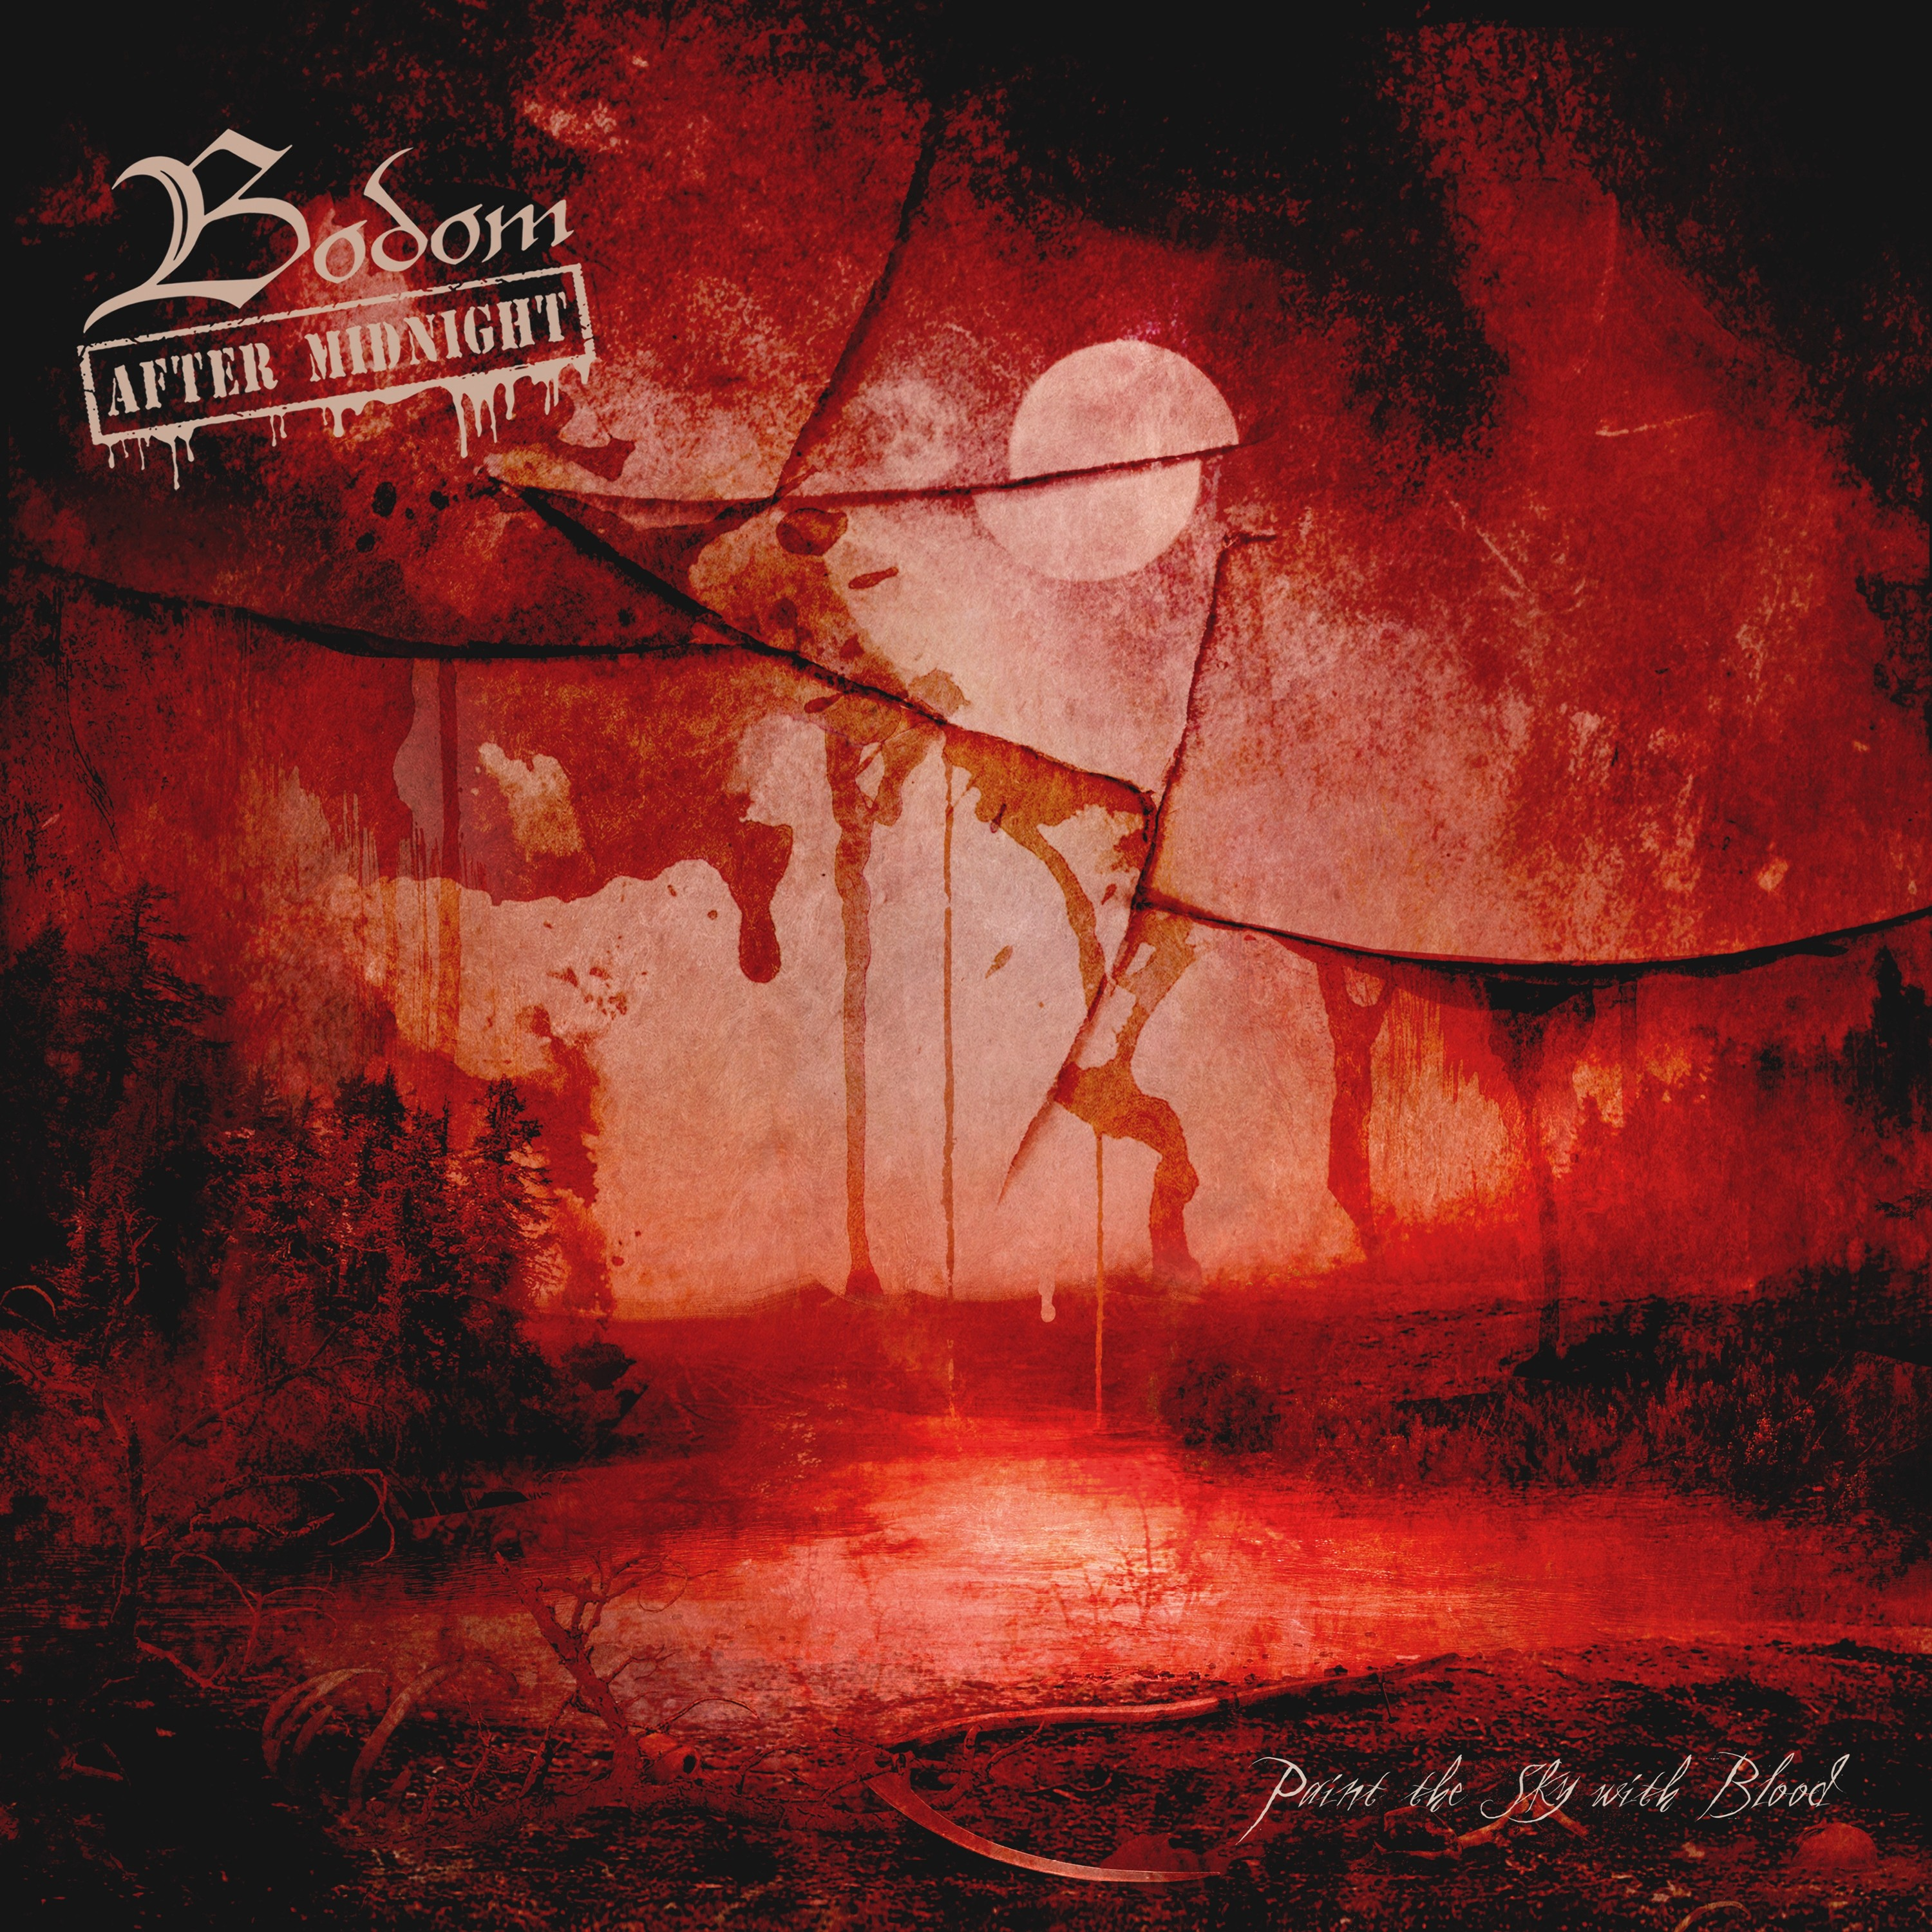 Bodom After Midnight - Paint the Sky with Blood - CD EP